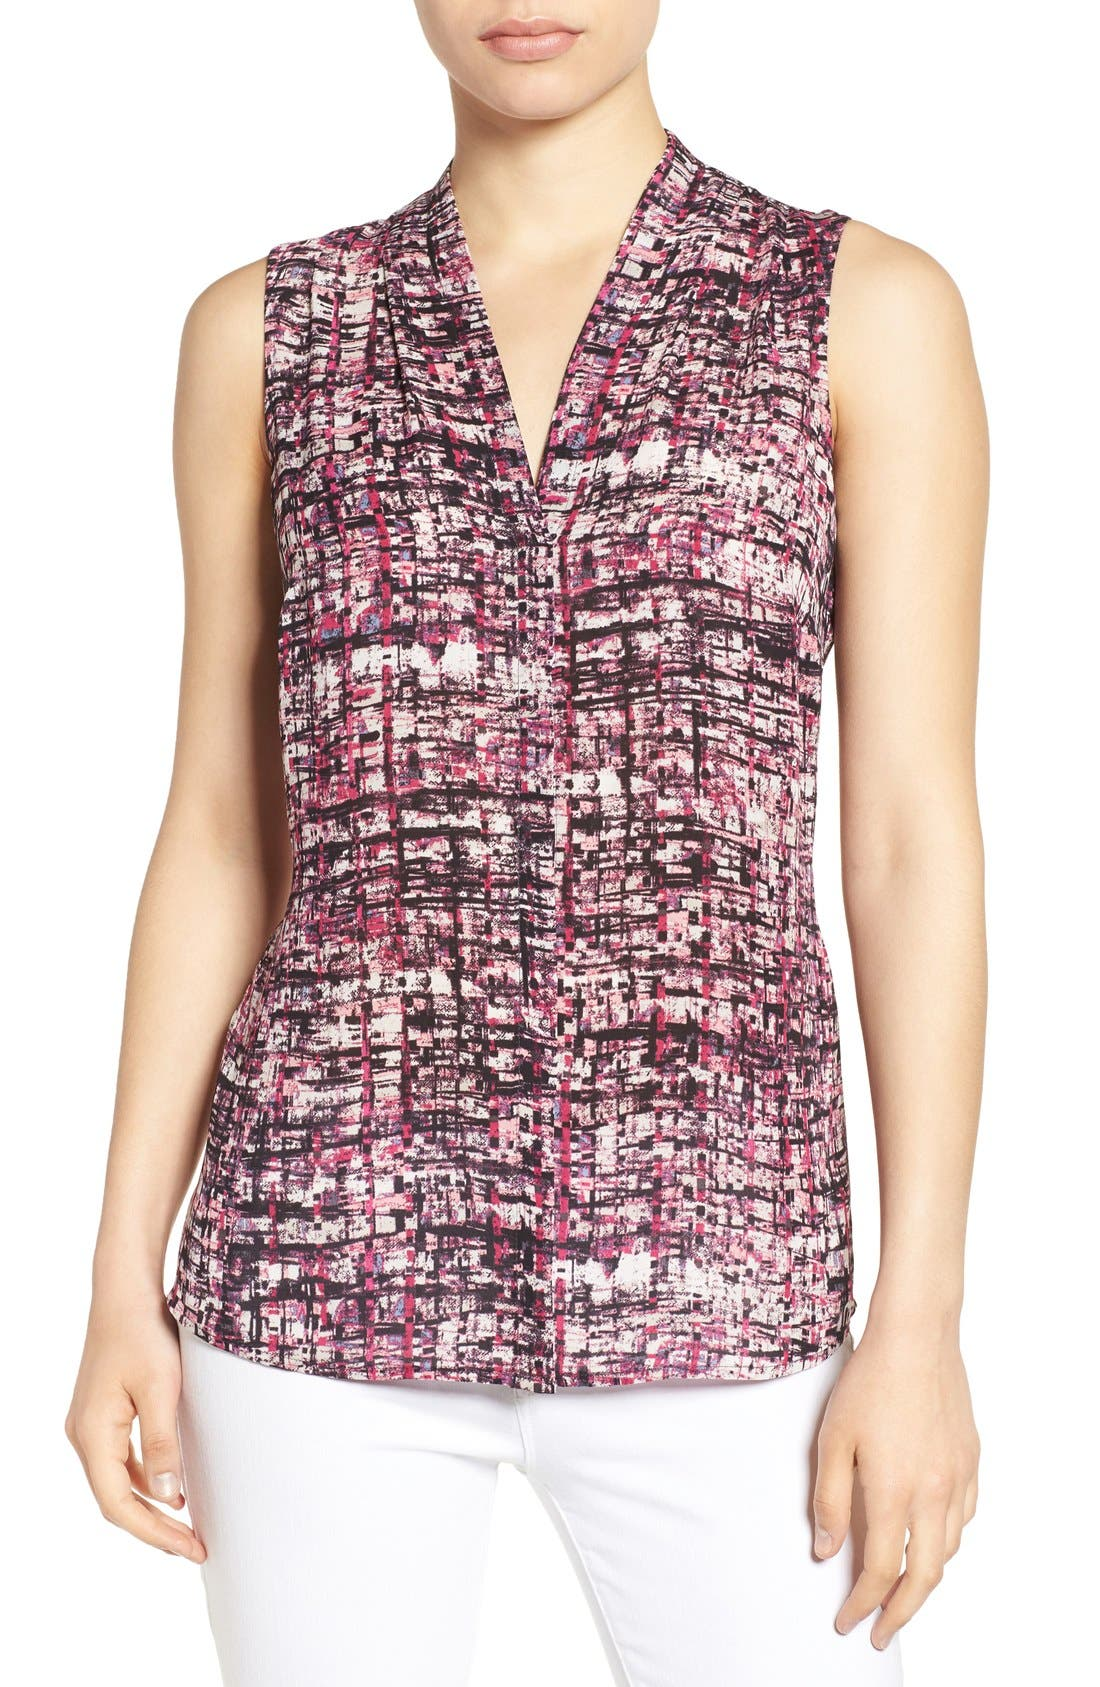 Main Image - NIC+ZOE 'Painted Plaid' Print V-Neck Sleeveless Top